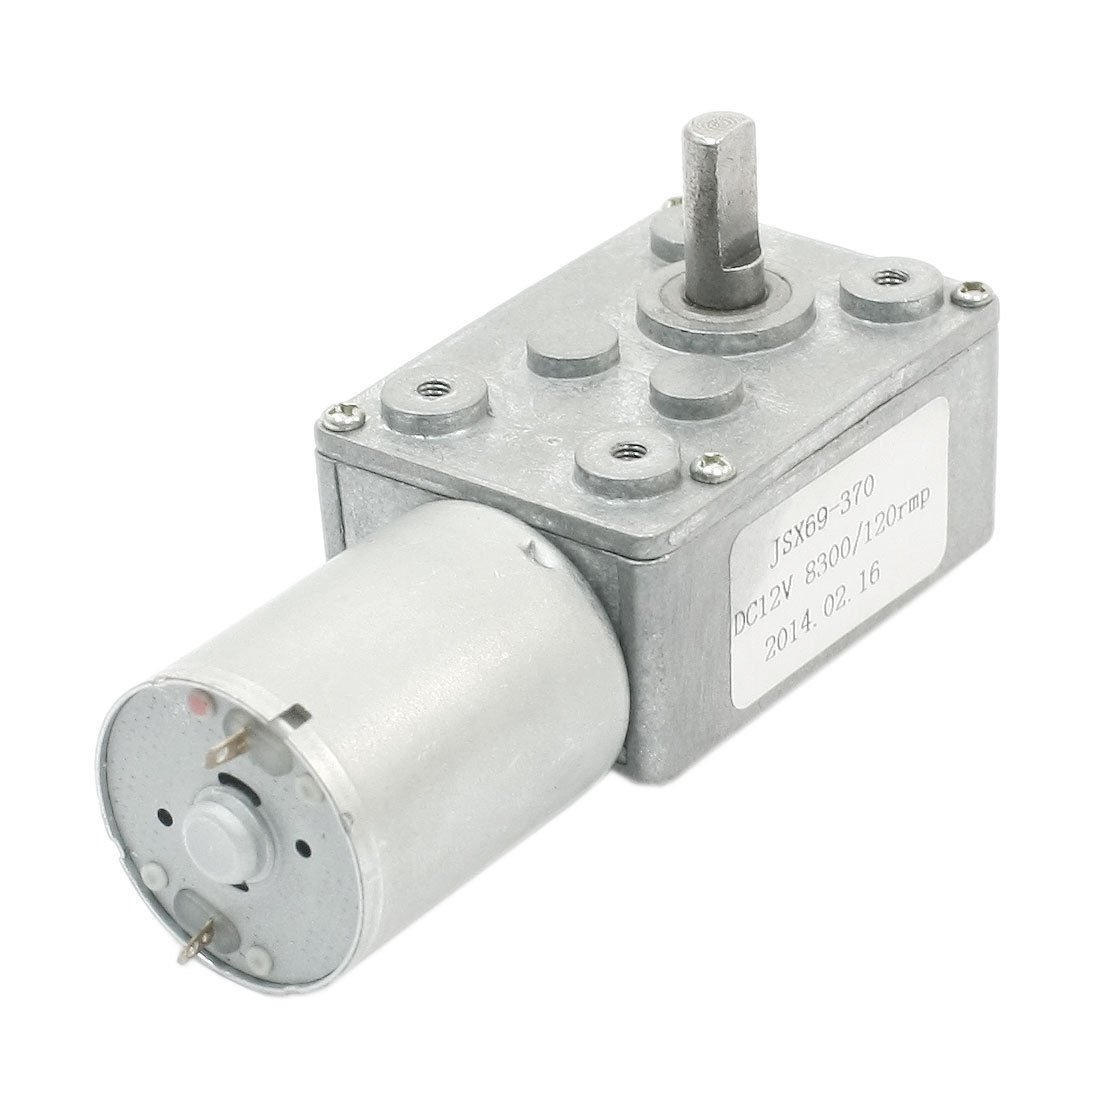 DC 12V 8300RPM/120RPM 4.5mm D Shaft Reduction Ratio Worm Geared Box Motor